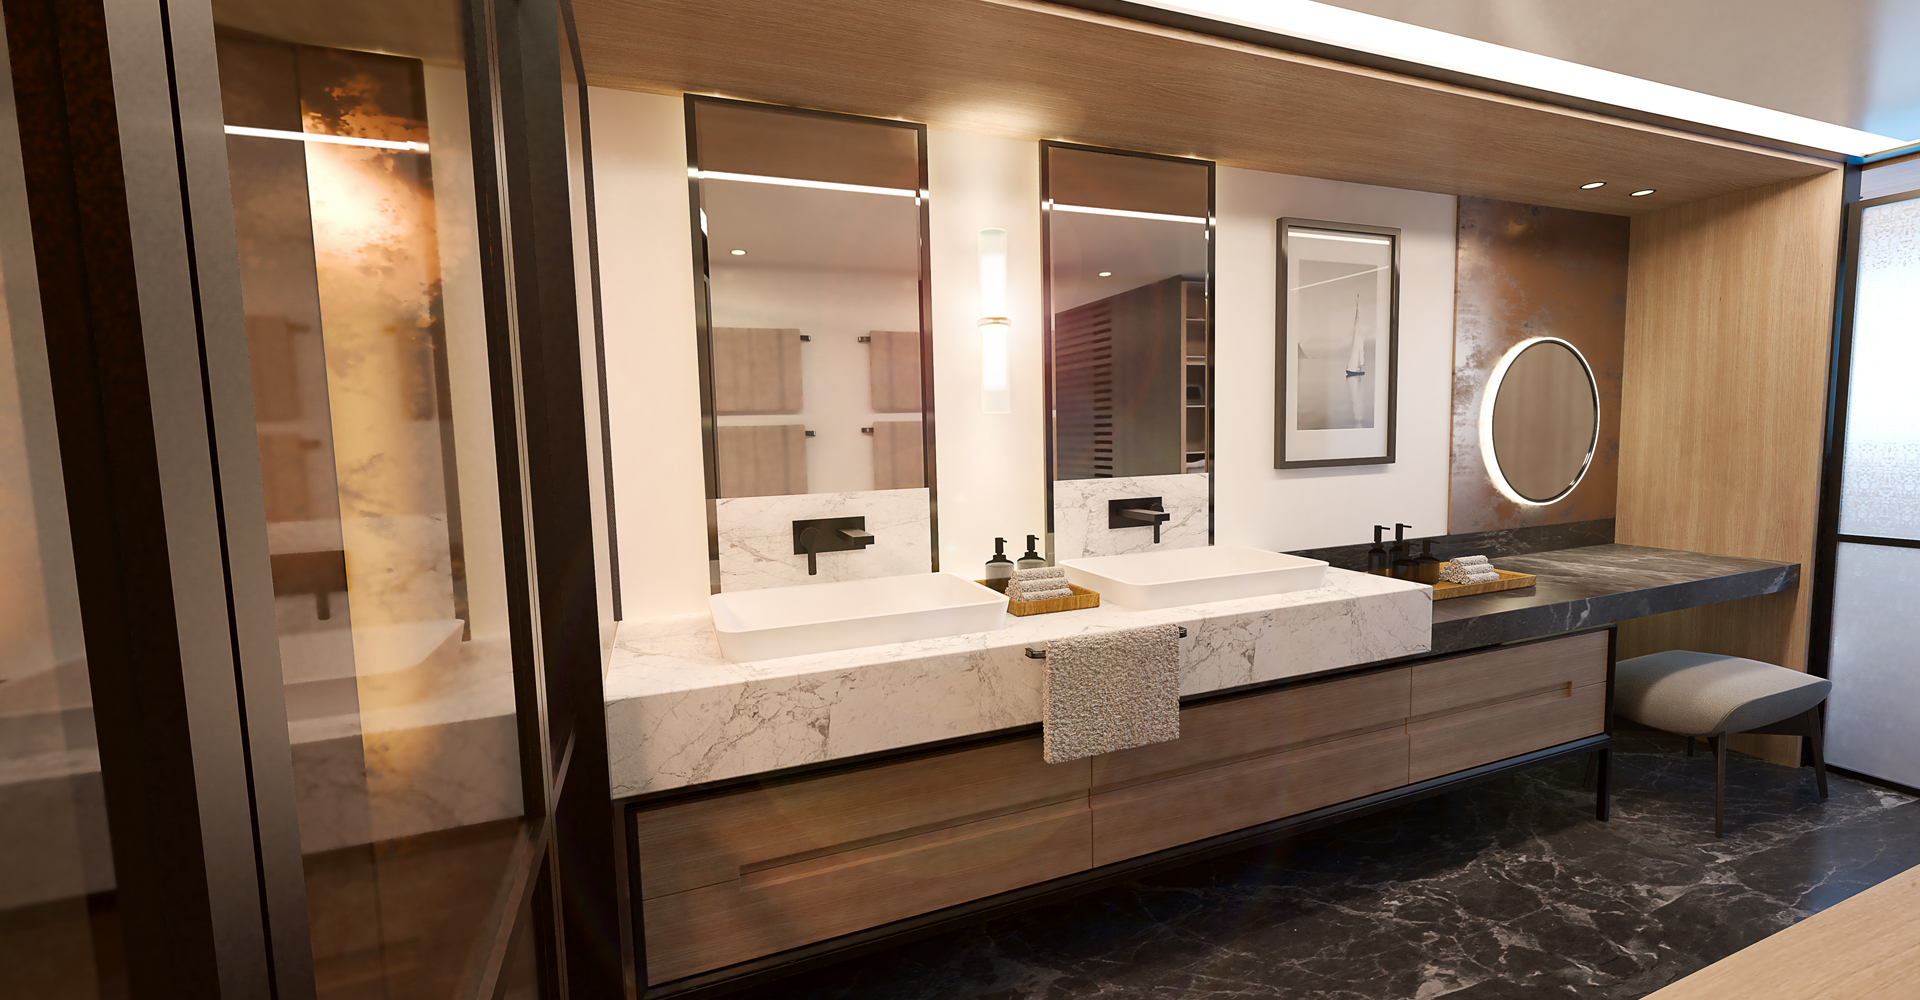 His and hers vanity units